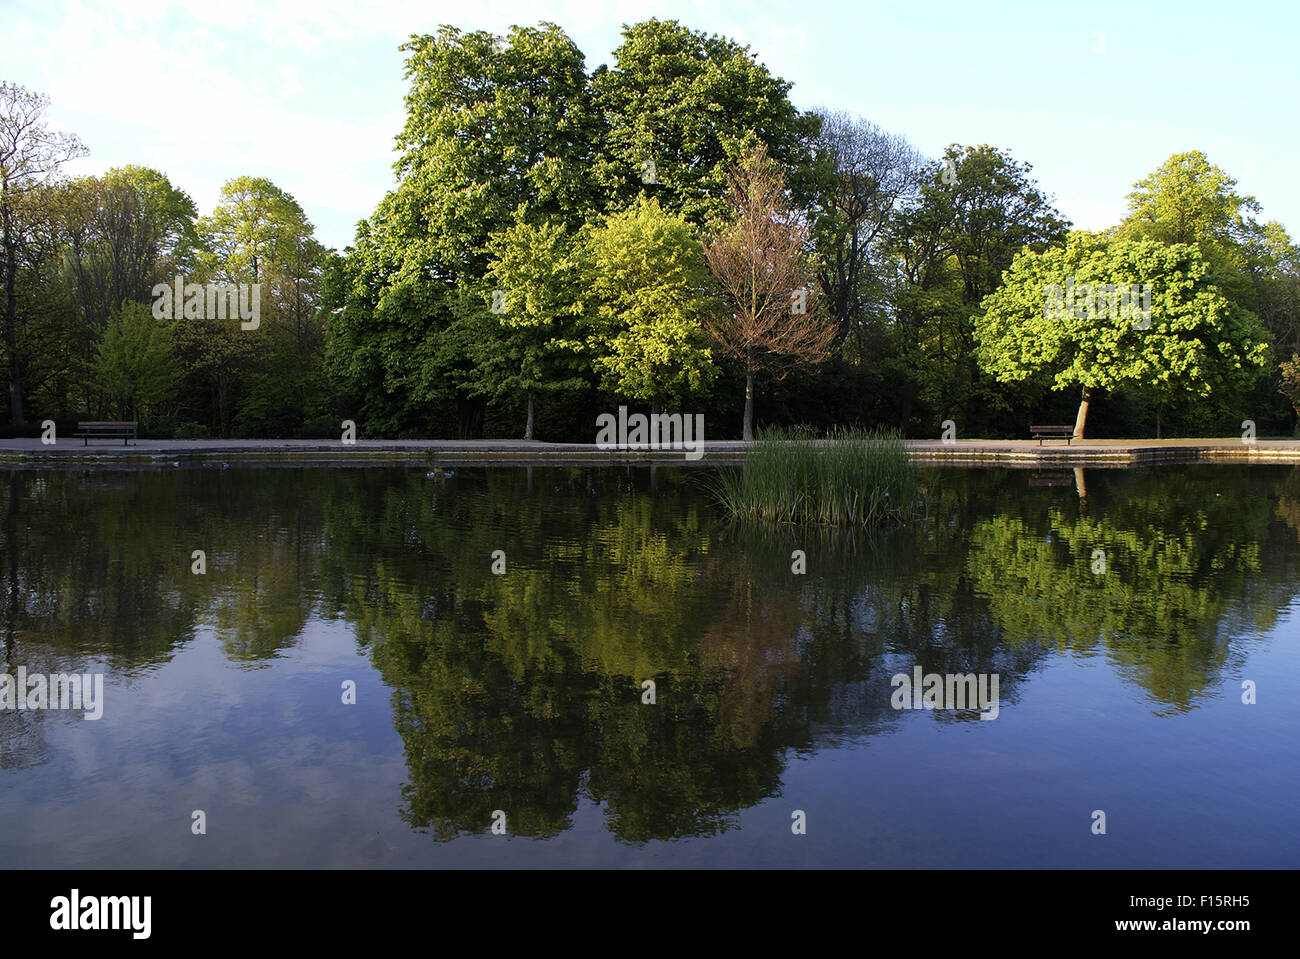 Reflection of trees on a small lake in Radnor Park, Folkestone, Kent - Stock Image